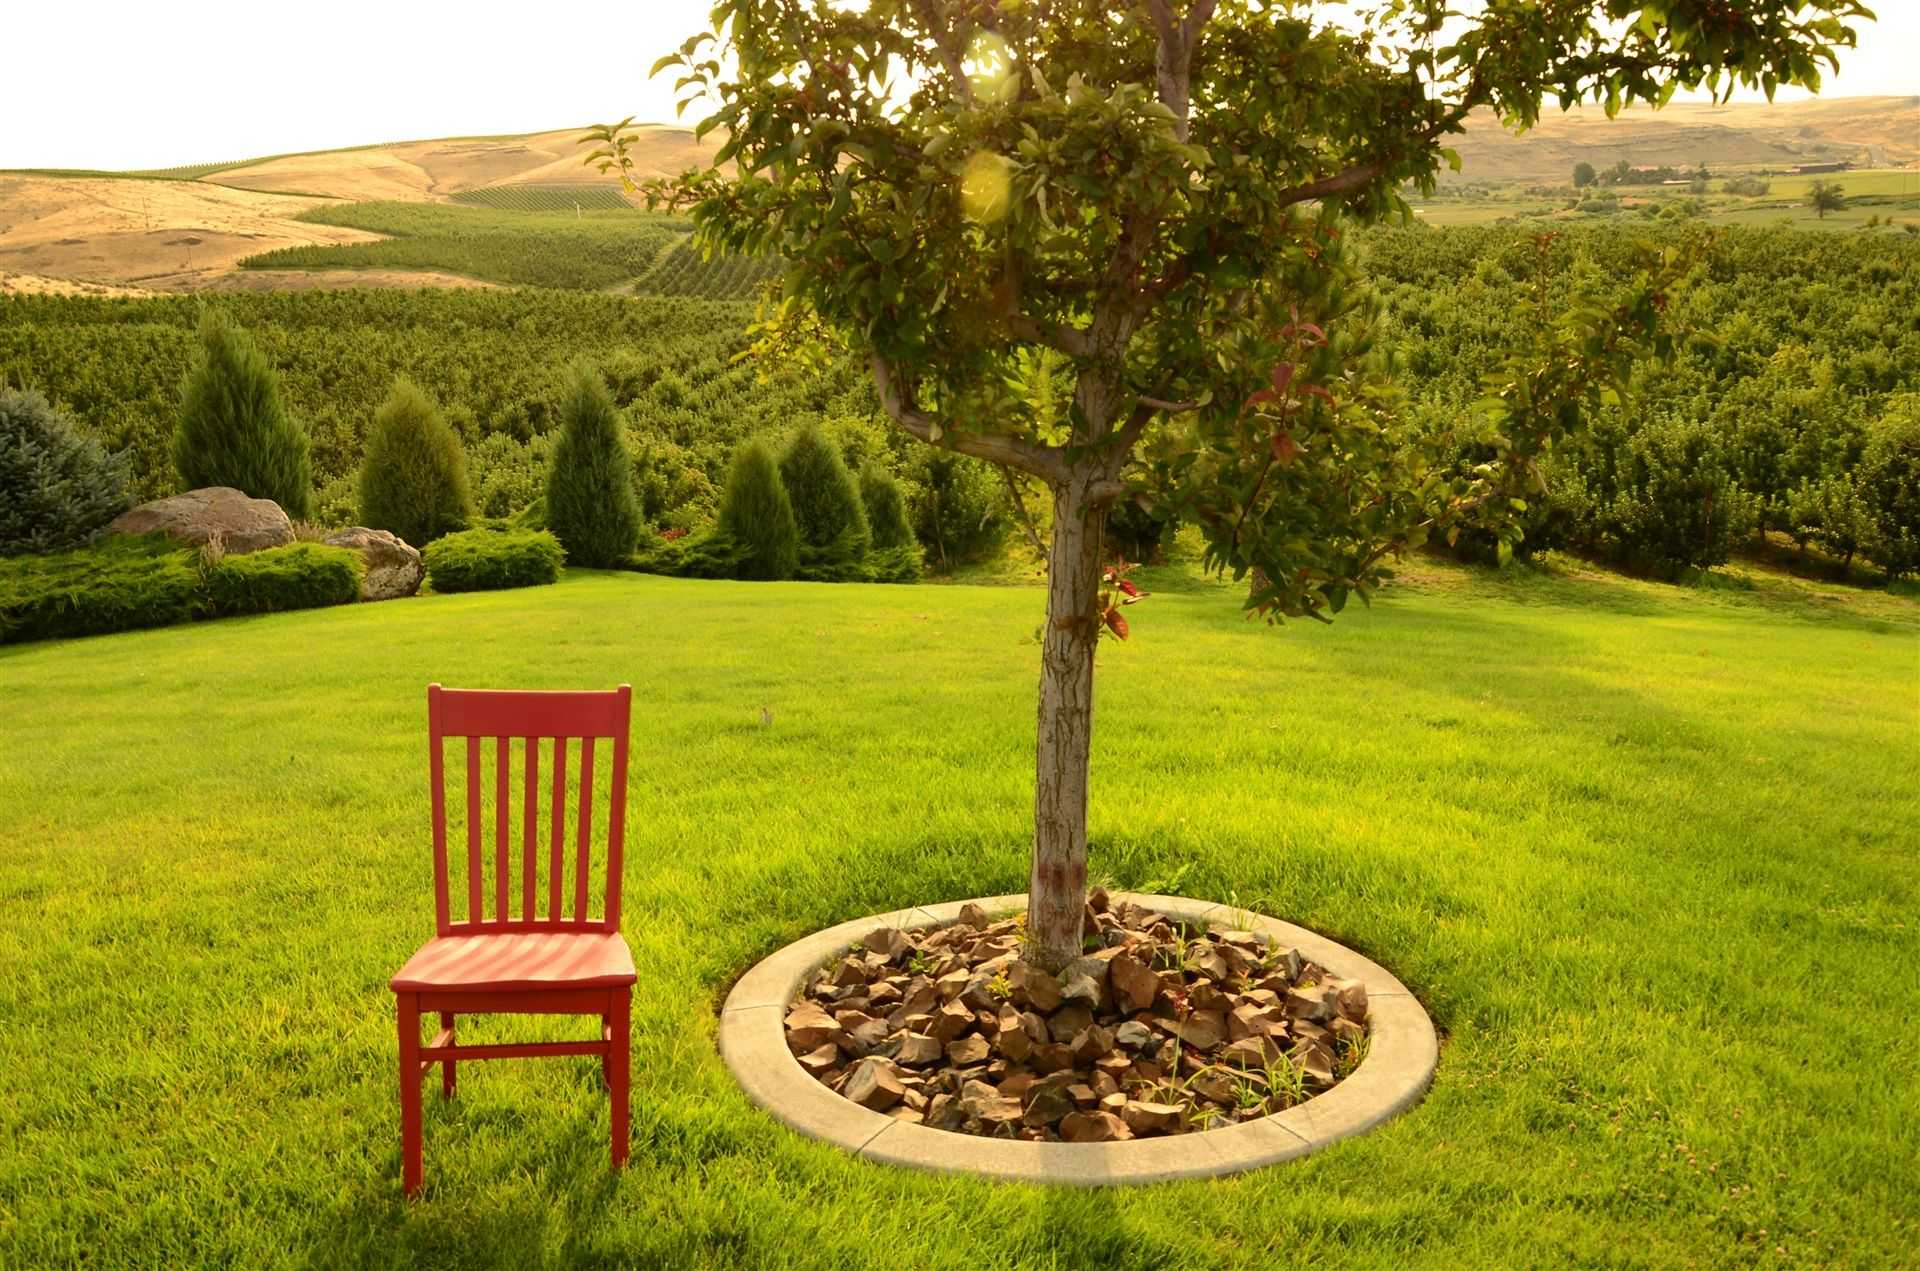 Red chair sitting on a well-manicured lawn next to a planted tree with a stonework ring a ways away from the current trunk; forested area and mountainous hills in the background